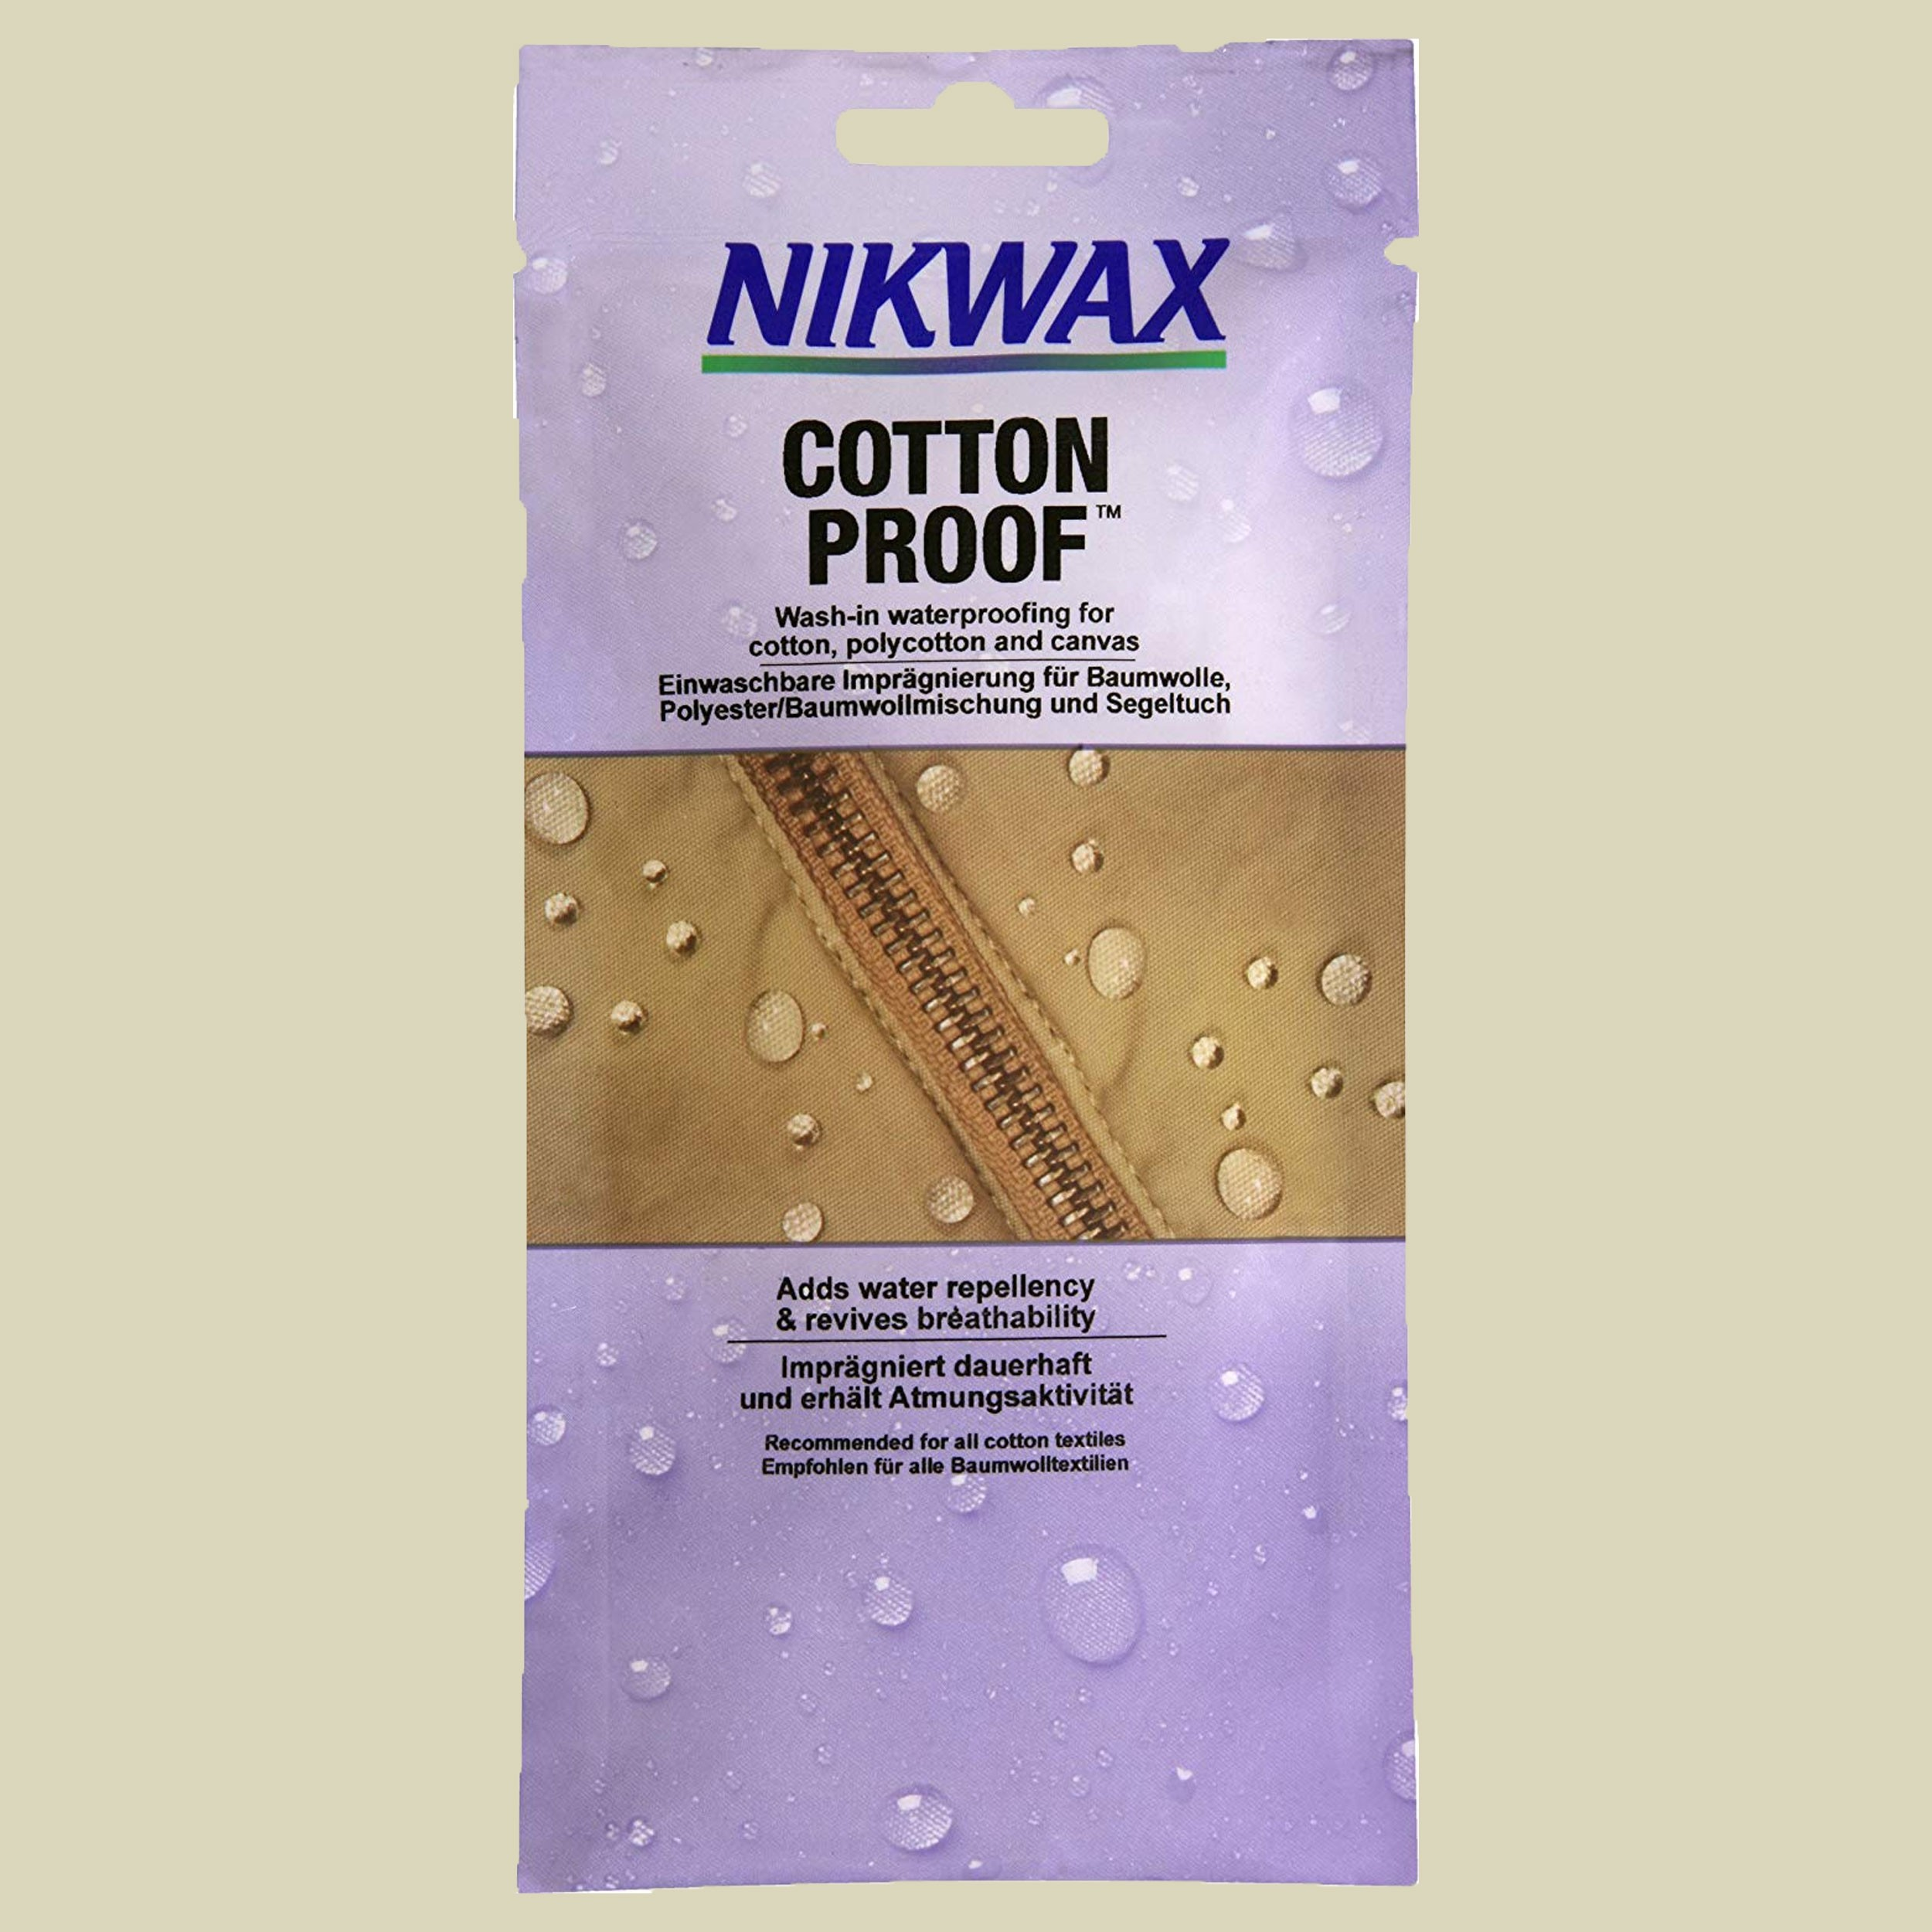 nikwax_cotton_proof_2h0_fallback